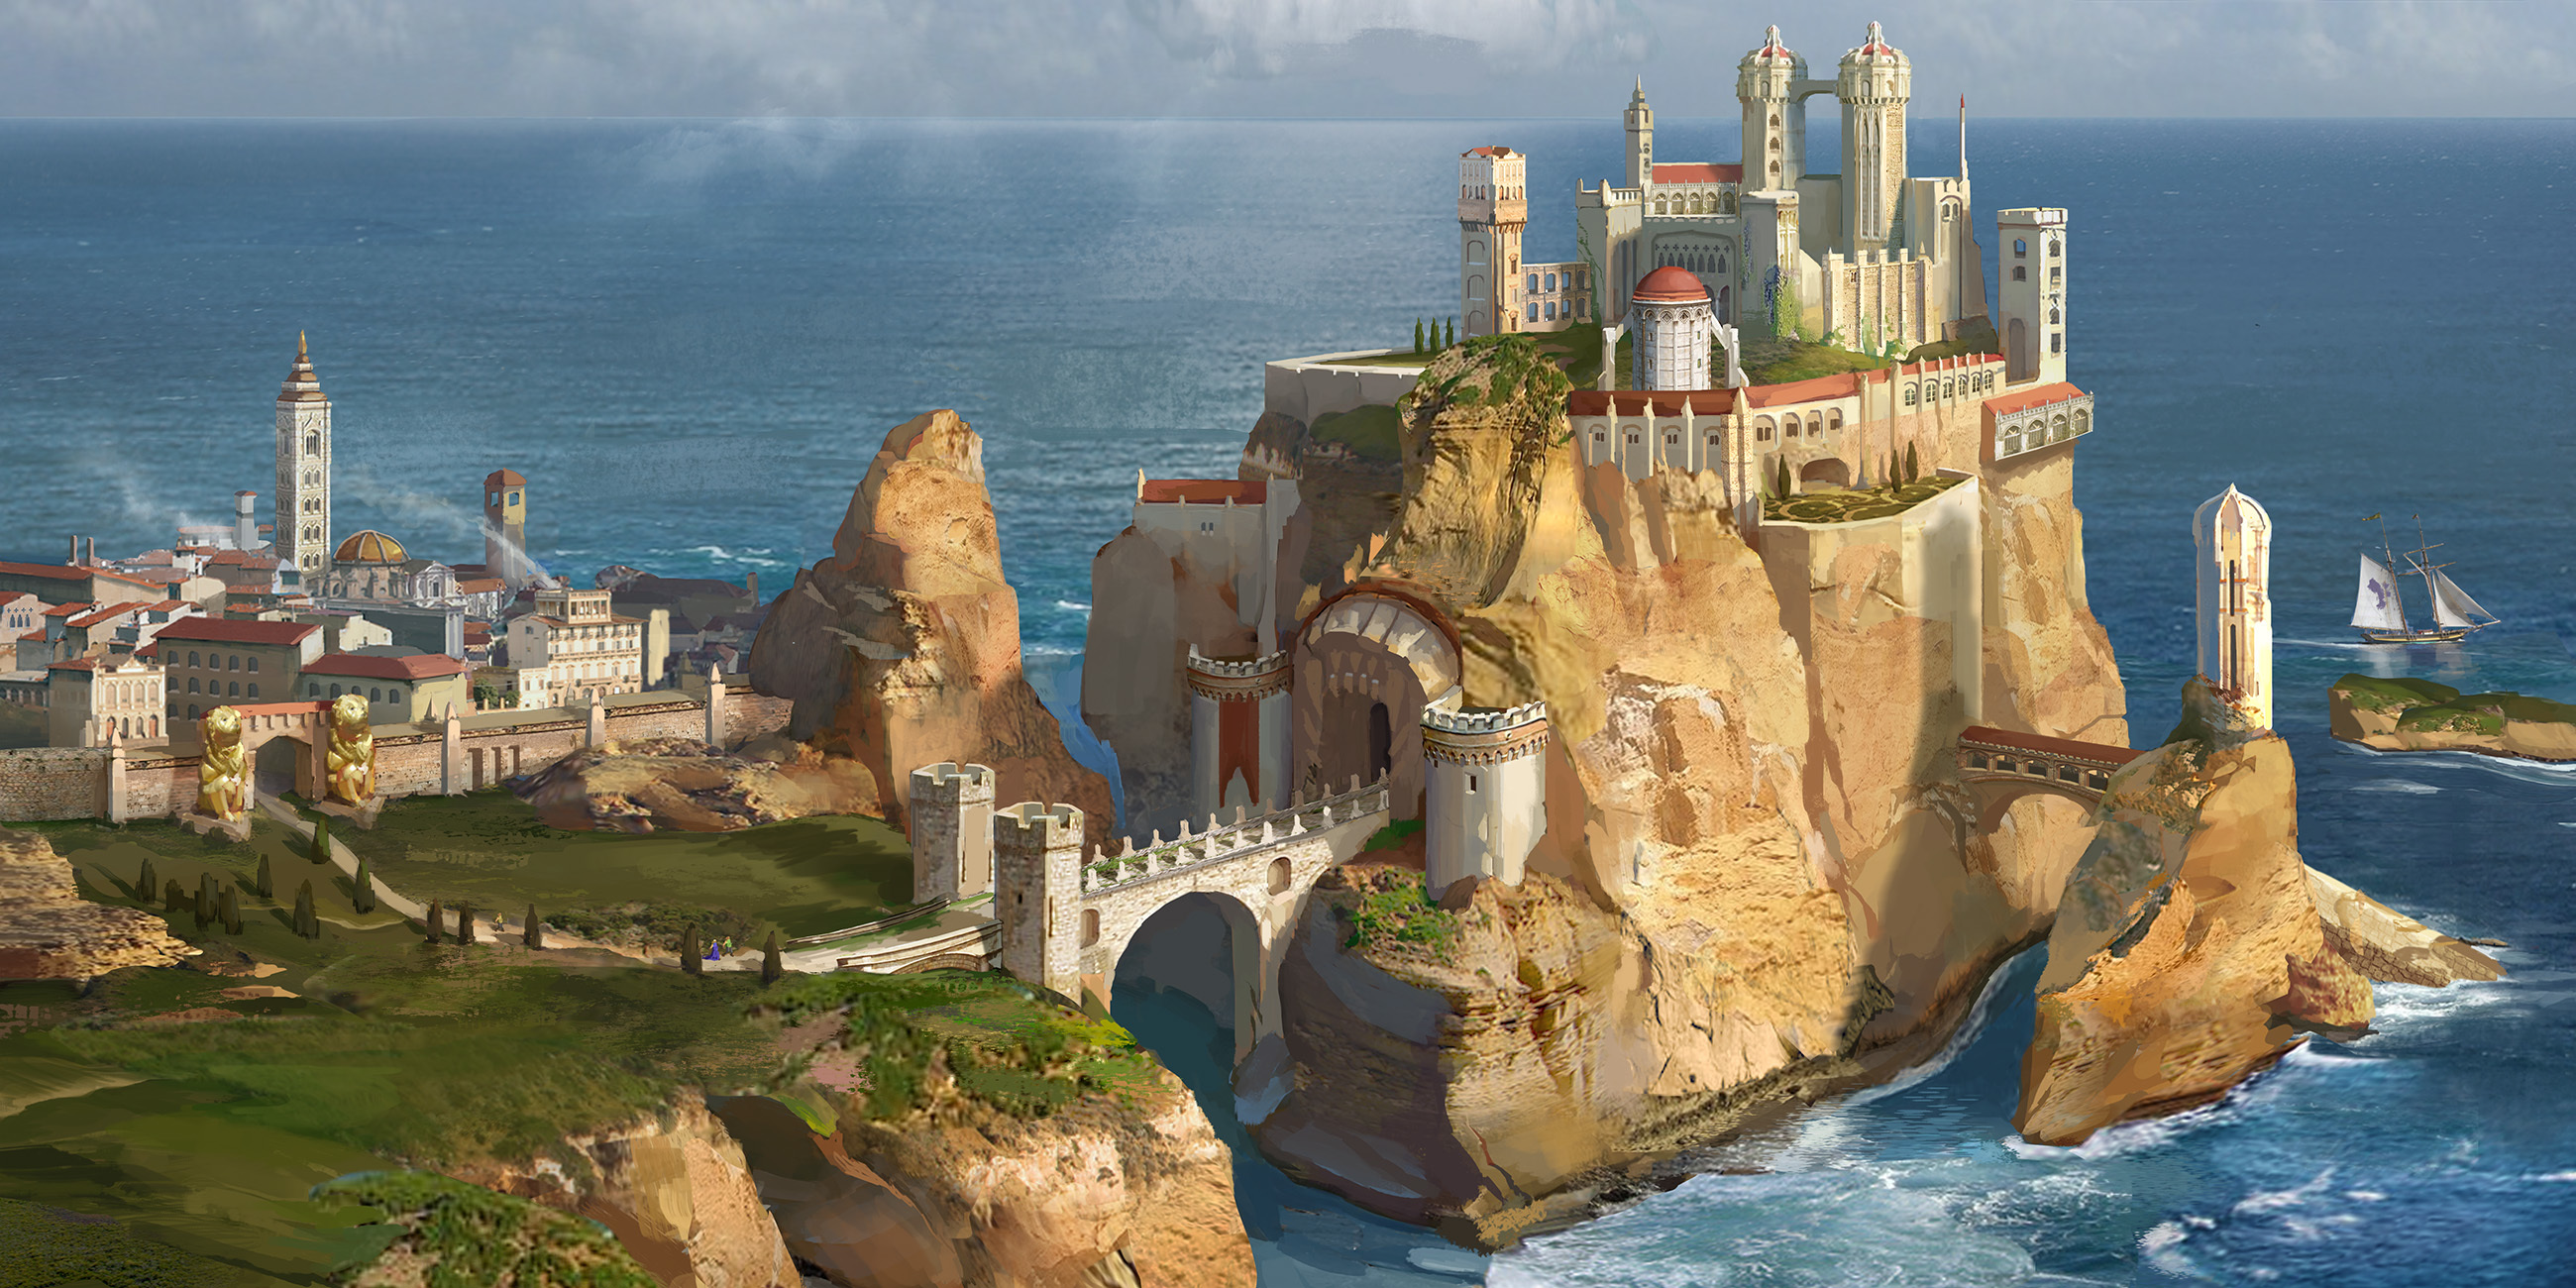 https://img1.goodfon.com/original/2600x1300/a/98/art-casterly-rock-house.jpg